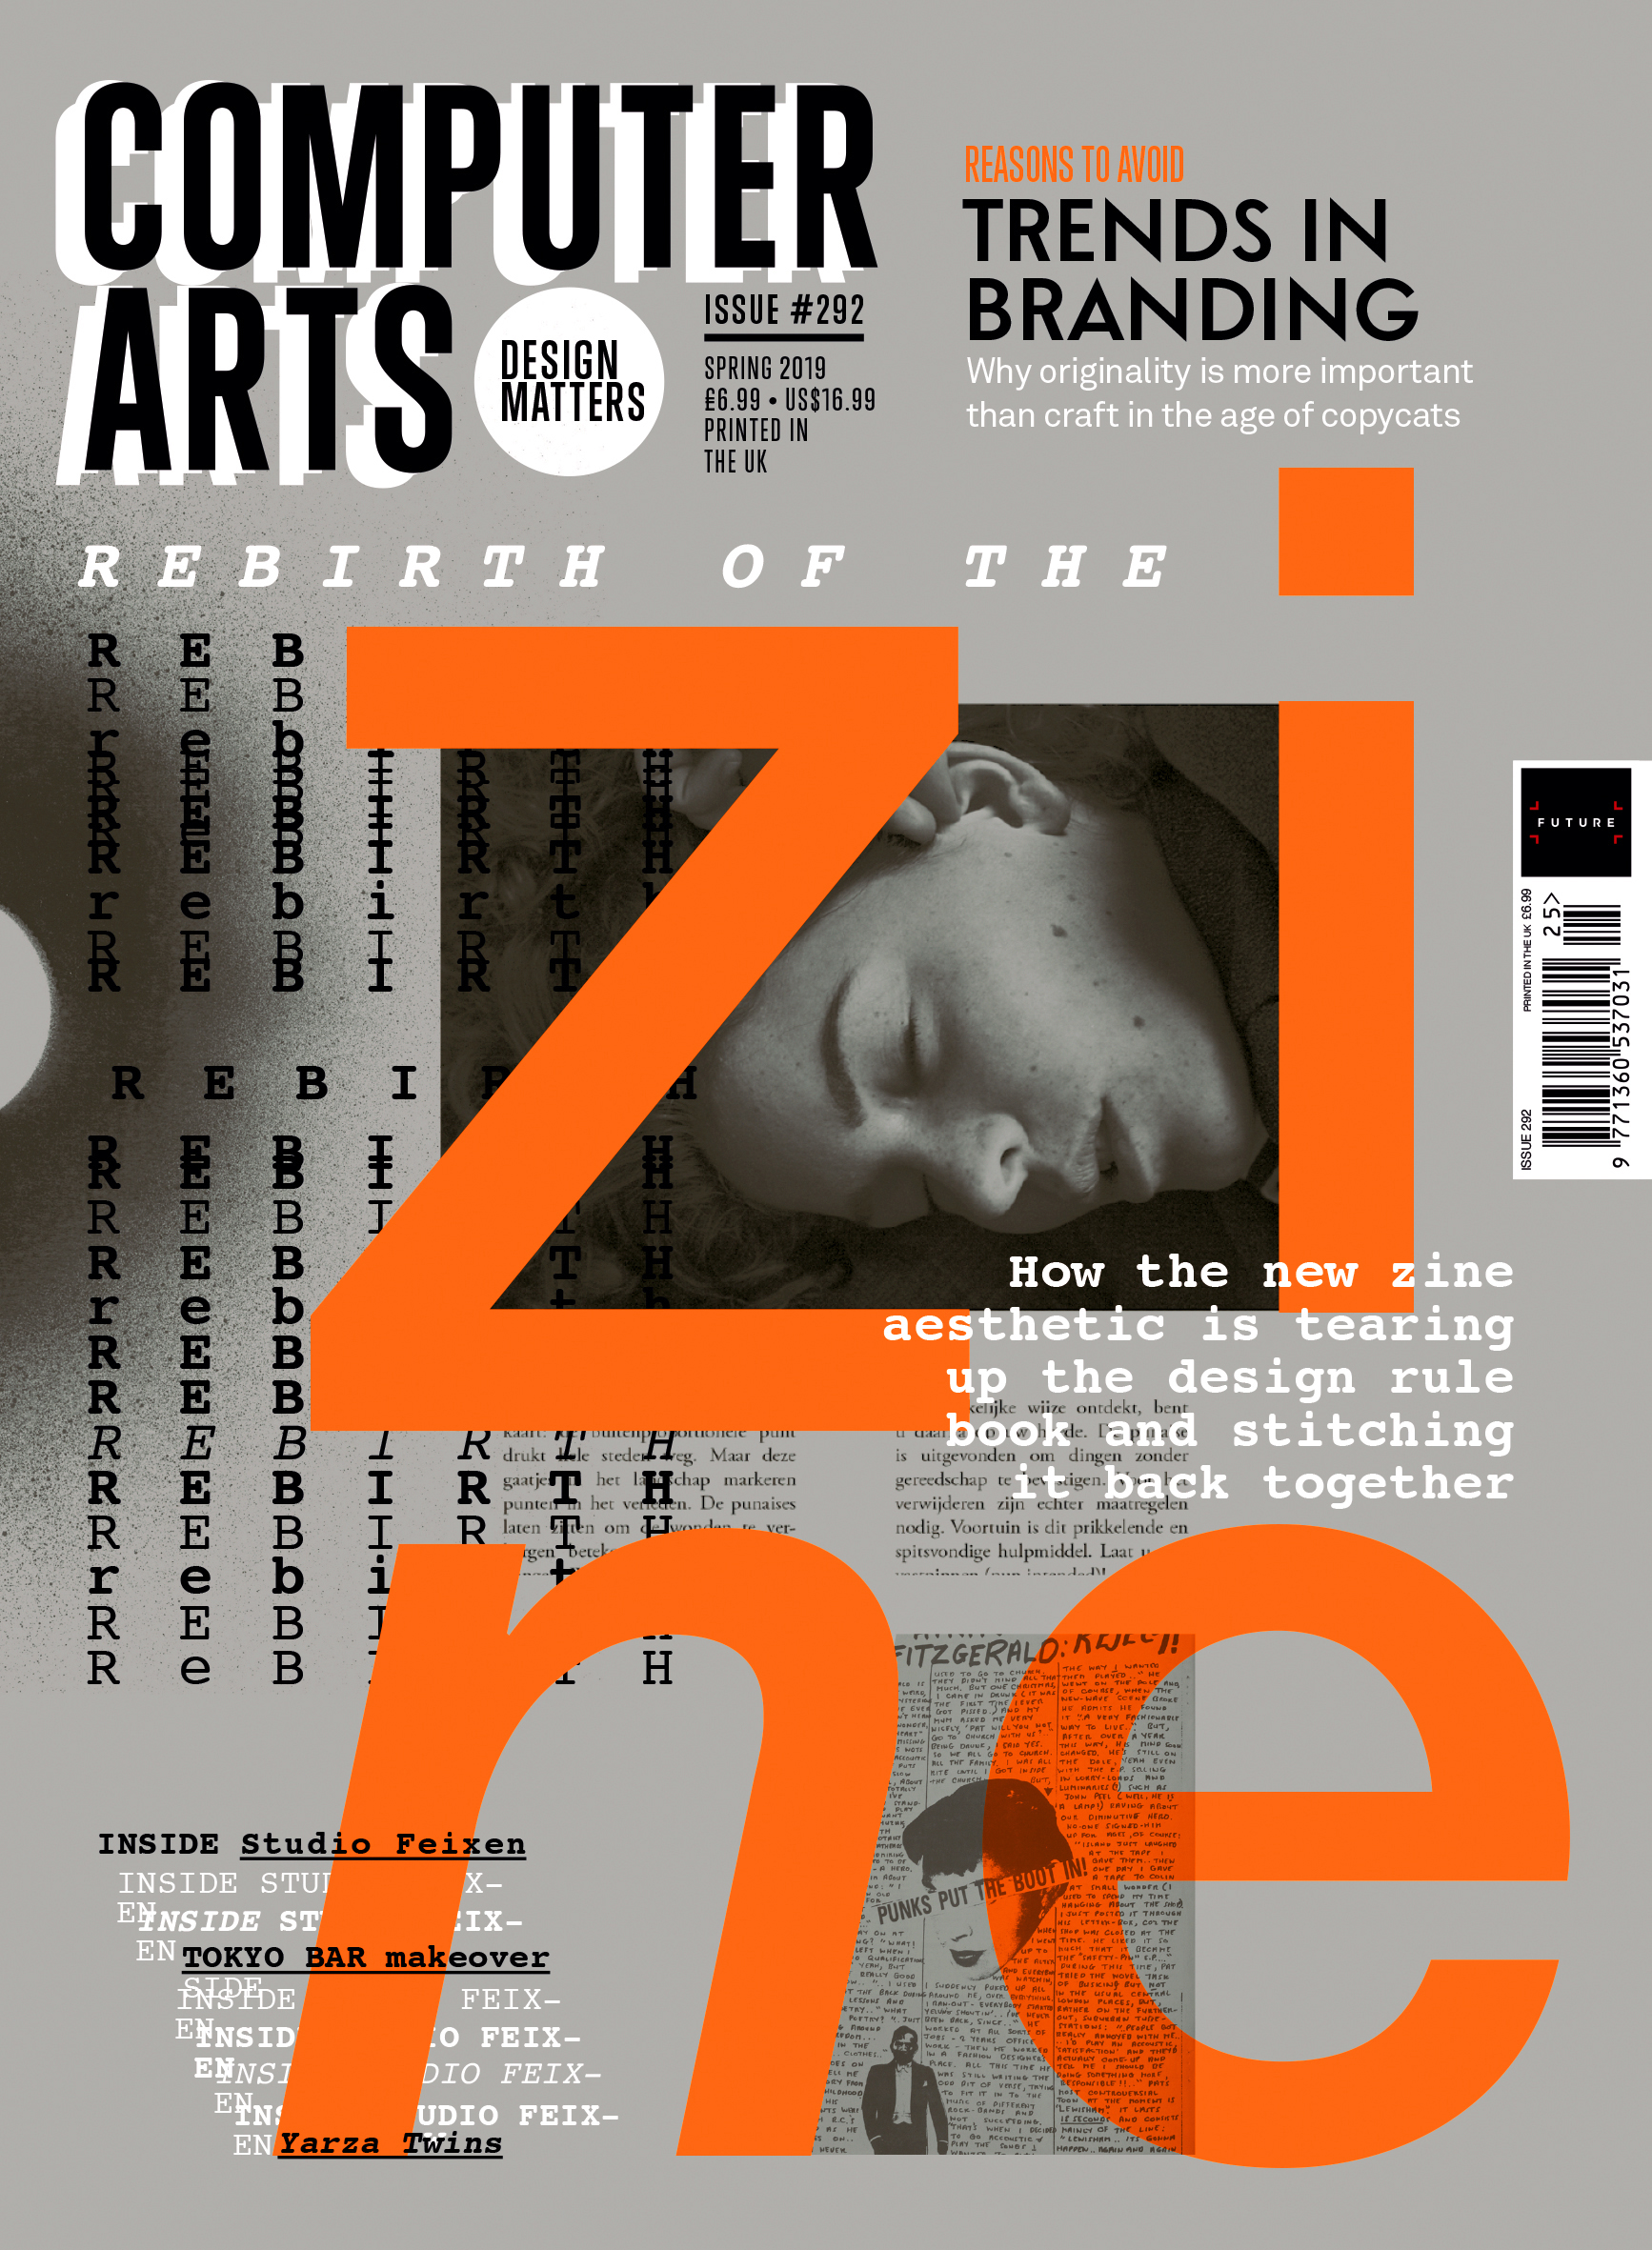 Discover the art of the zine with Computer Arts 292